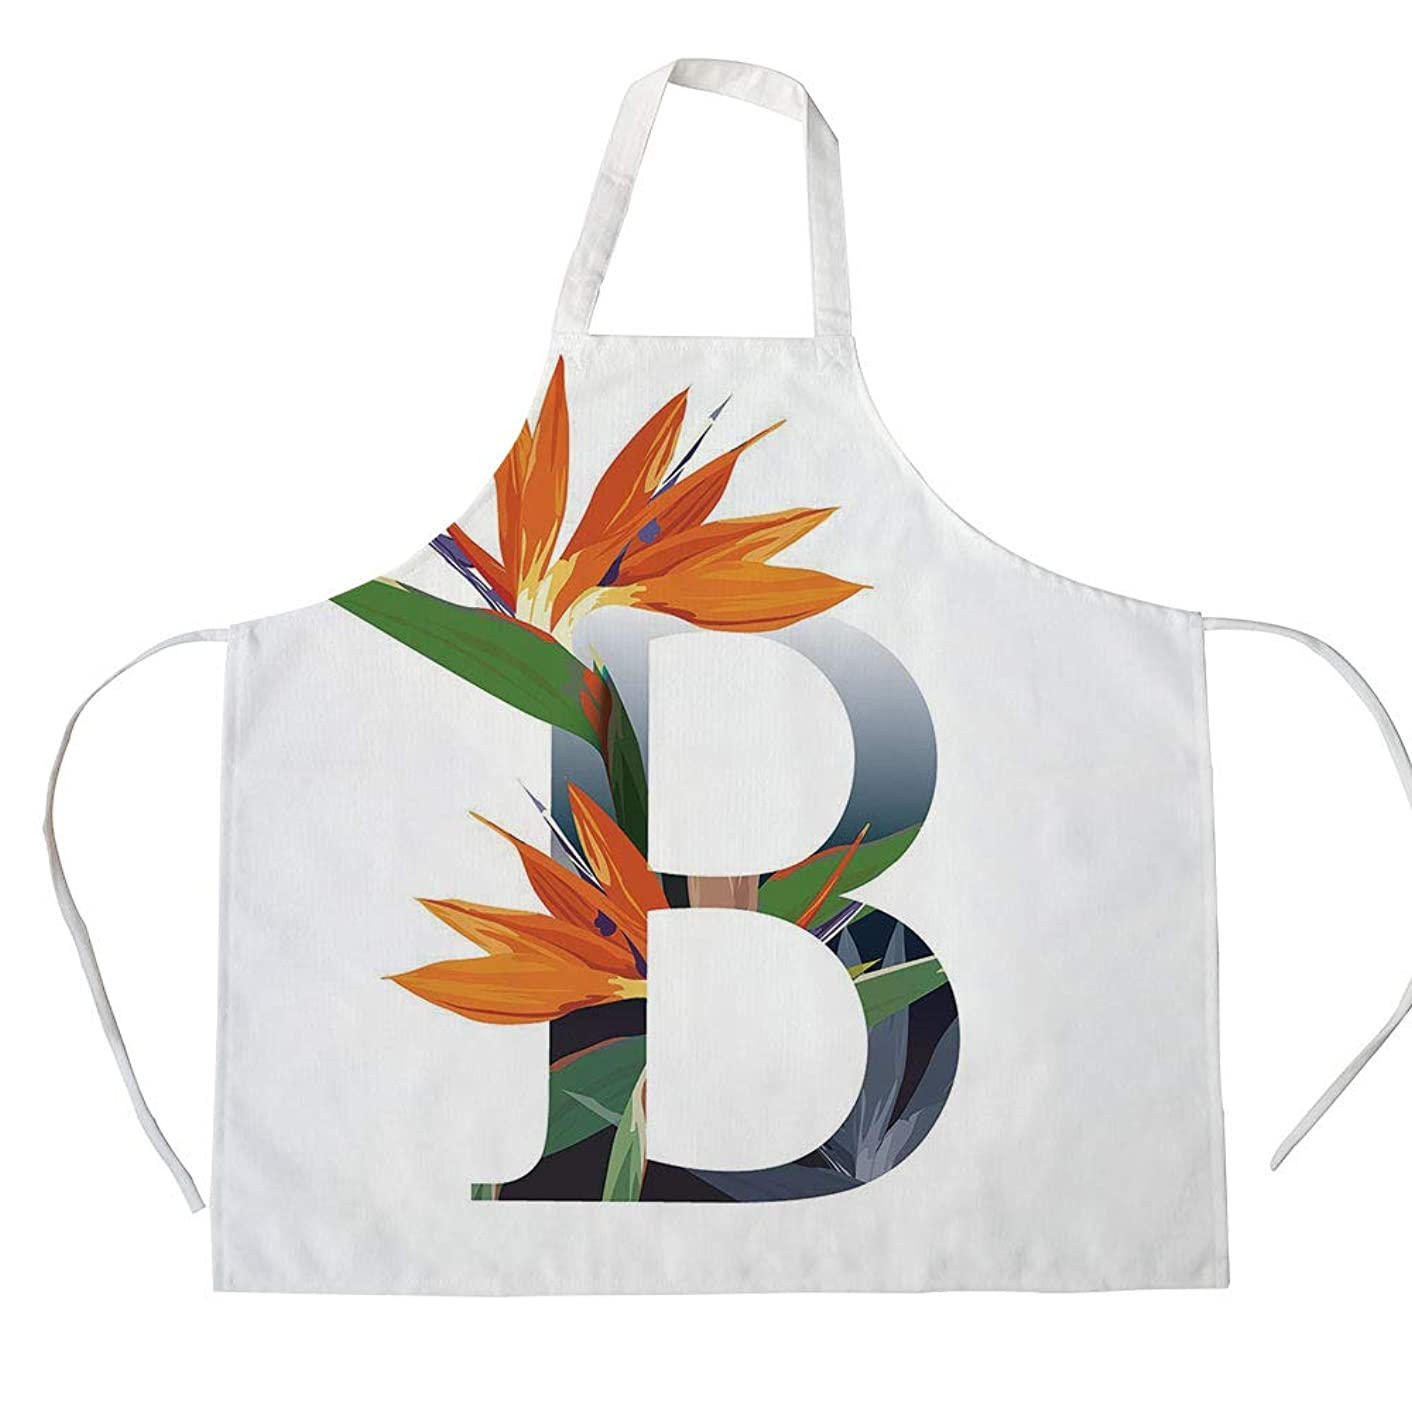 Letter B 3D Printed Cotton Linen Apron,Letter B with Bird of Paradise Flower Alphabet Character Font Design Print Decorative,for Cooking Baking Gardening,Orange Green Grey